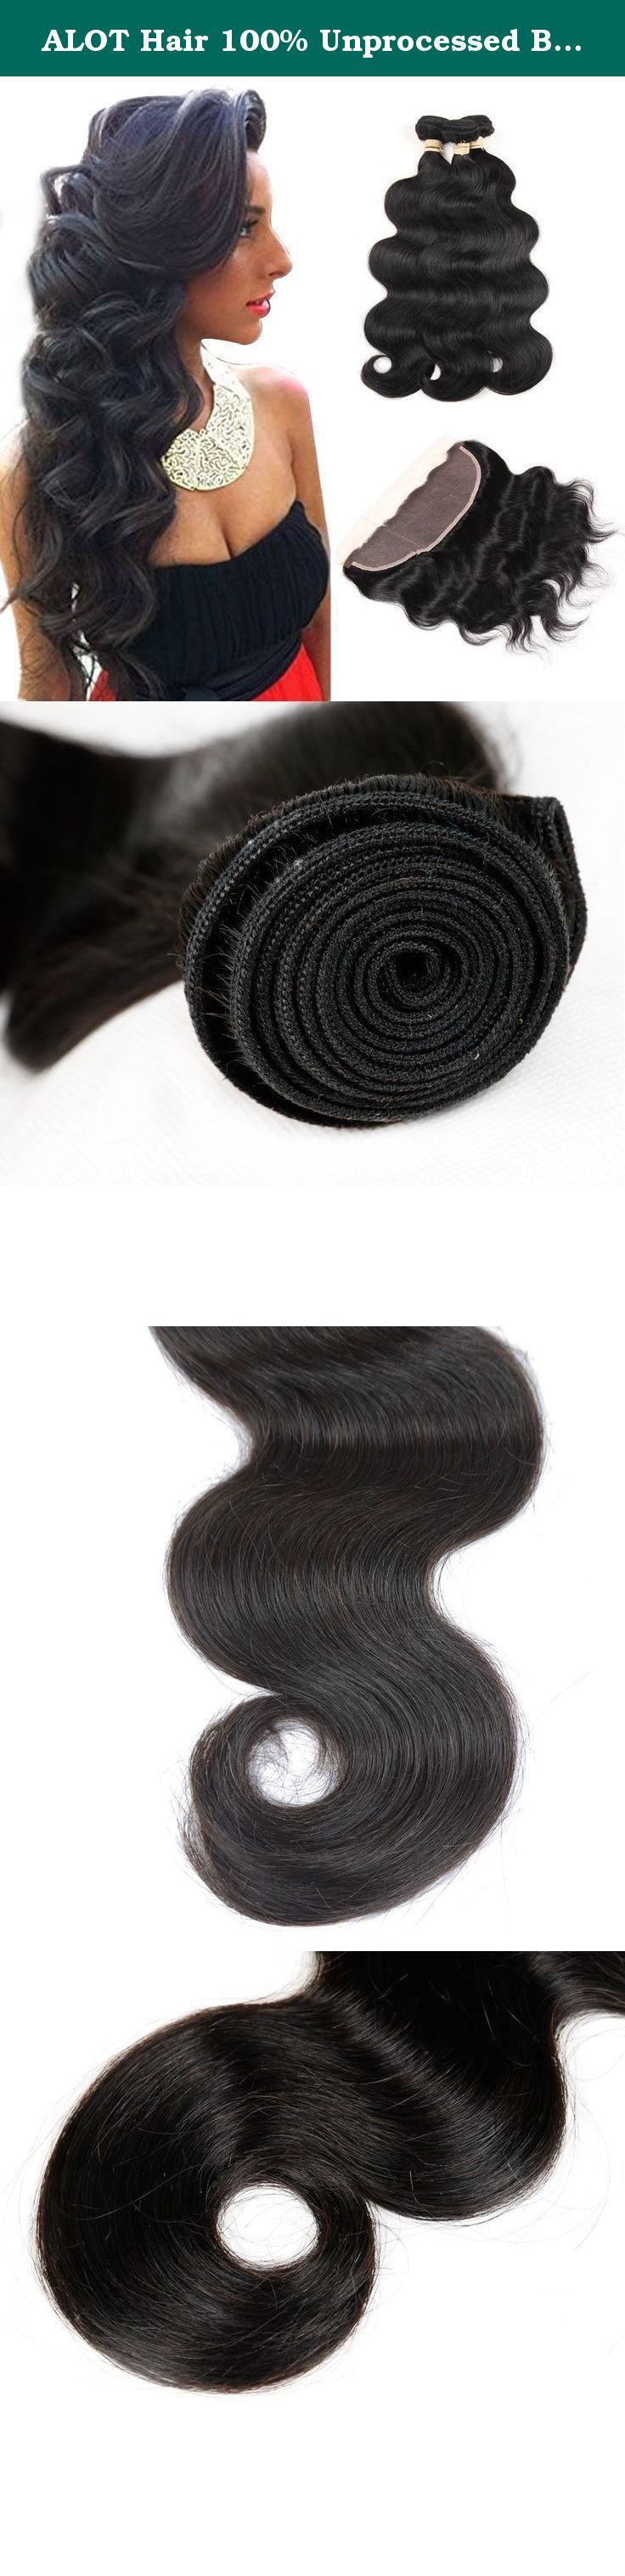 "ALOT Hair 100% Unprocessed Brazilian Real Human Hair 3 Bundles with 13×4 Ear to Ear Lace Frontal Closure, Body Weave Hair Extensions , Natural Color Weft(12 12 14 with 10). ALOT Hair Spec: 1)Hair Material:100% unprocessed human hair 2) Hair Colour: Unprocessed Natural Color ,similar with 1b 3) Hair Grade:7A; Length:8""-28""Provide Any Mix Length According Request . 4) Hair Weight:Each bundle is about 95~100g , and each bundle is maxgram. 5)Texture:body hair weft ,holding weave for a long…"